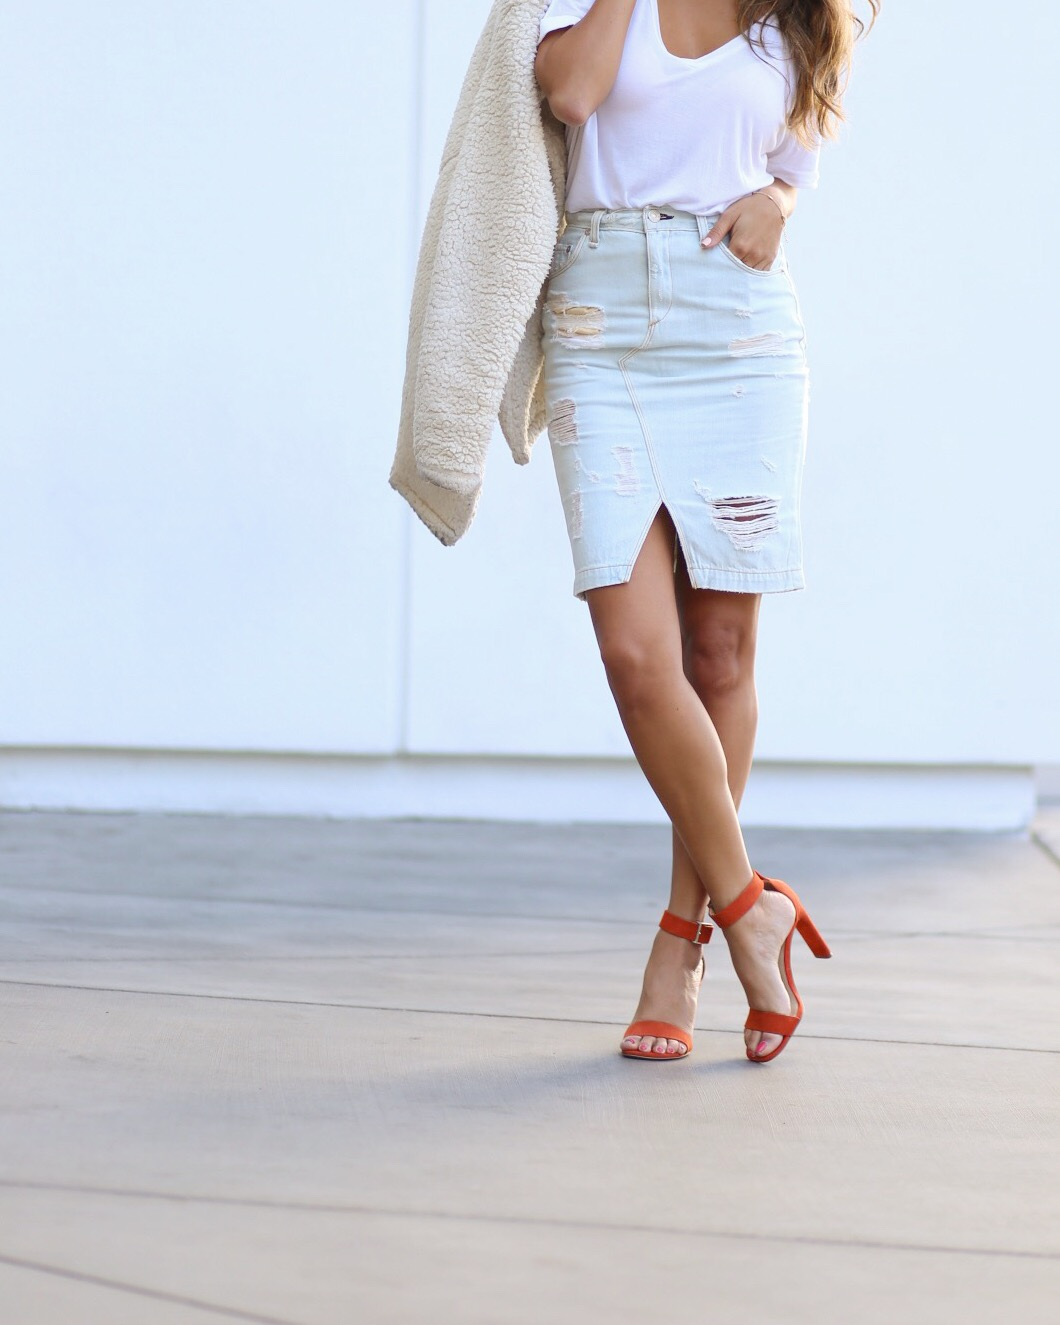 rag and bone, how to wear denim skirt, distressed skirt, casual outfit, pursuit of shoes